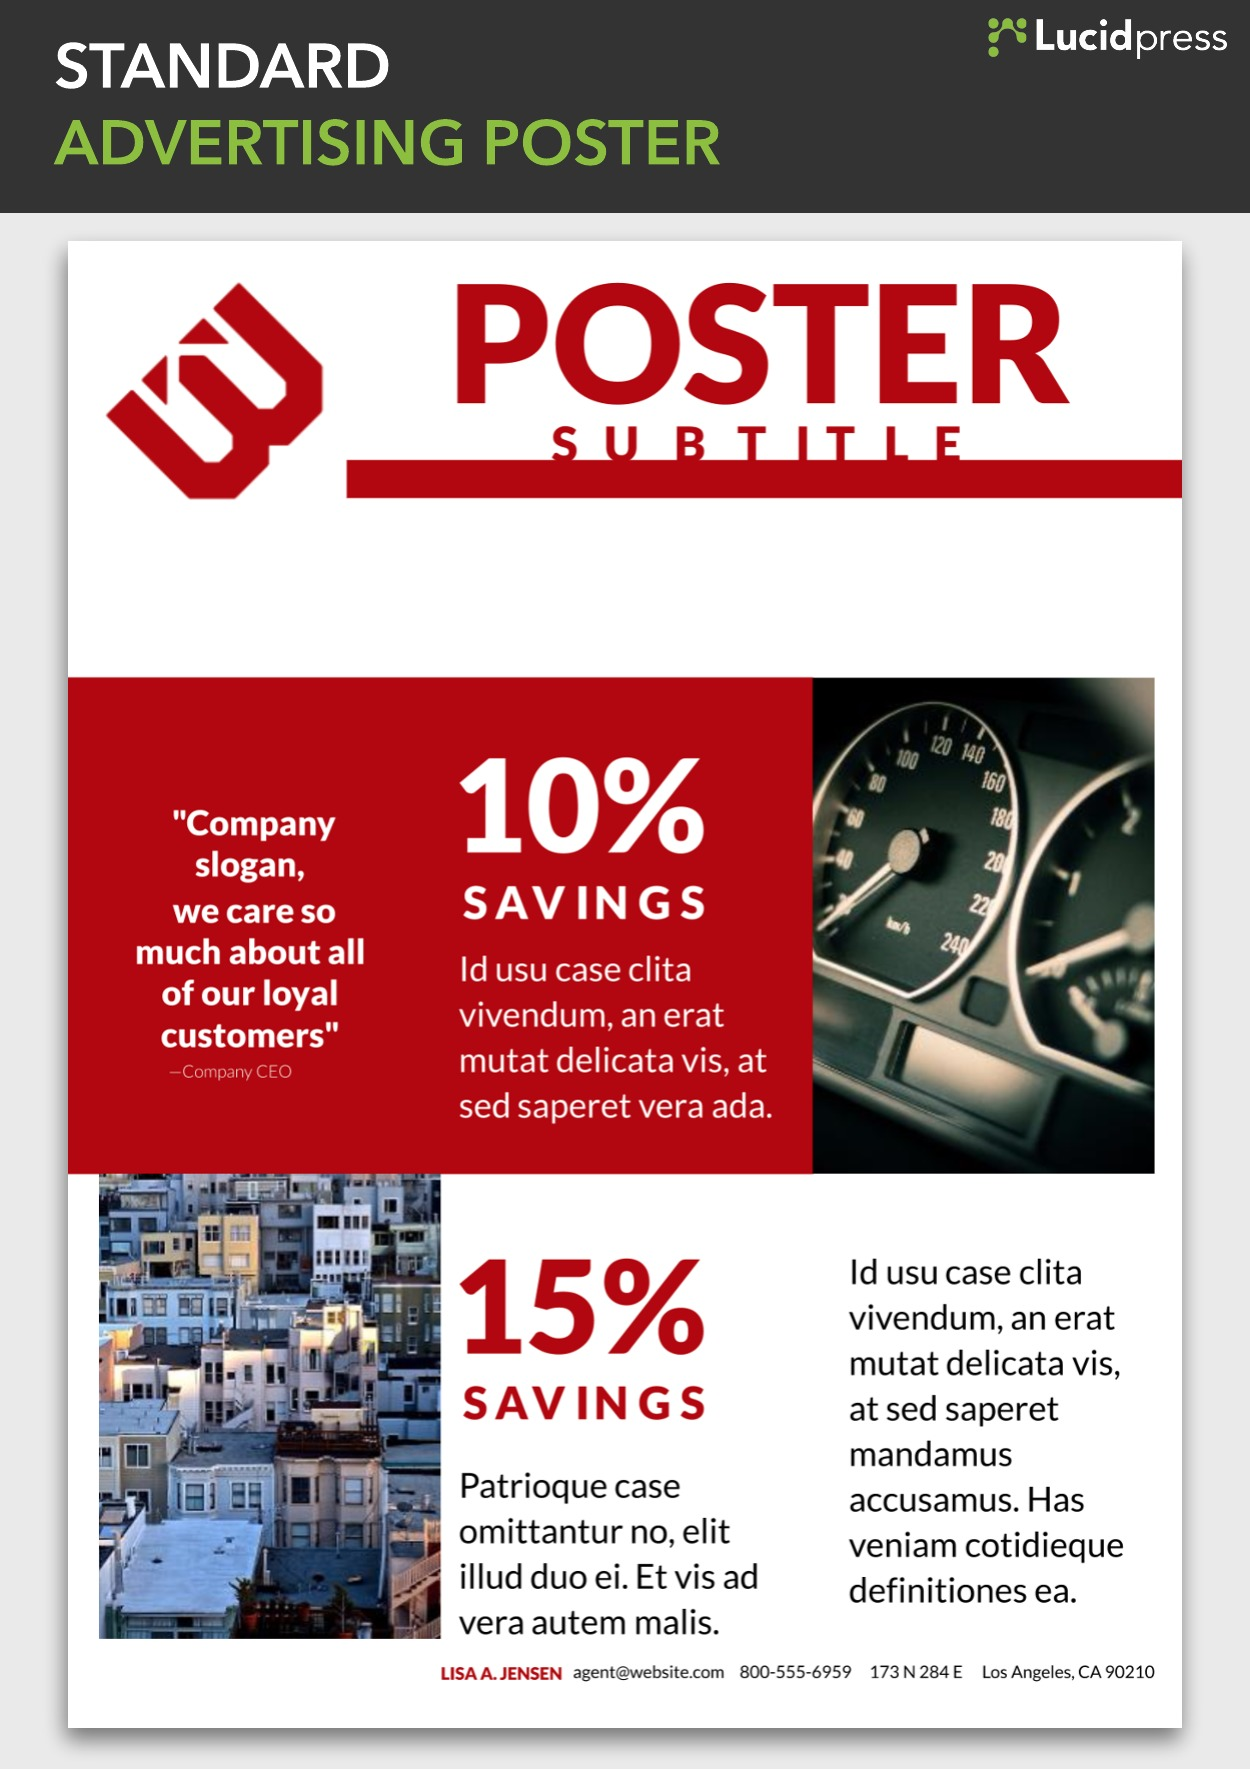 School Project Poster Design Ideas 18 Cool Creative Poster Ideas Lucidpress